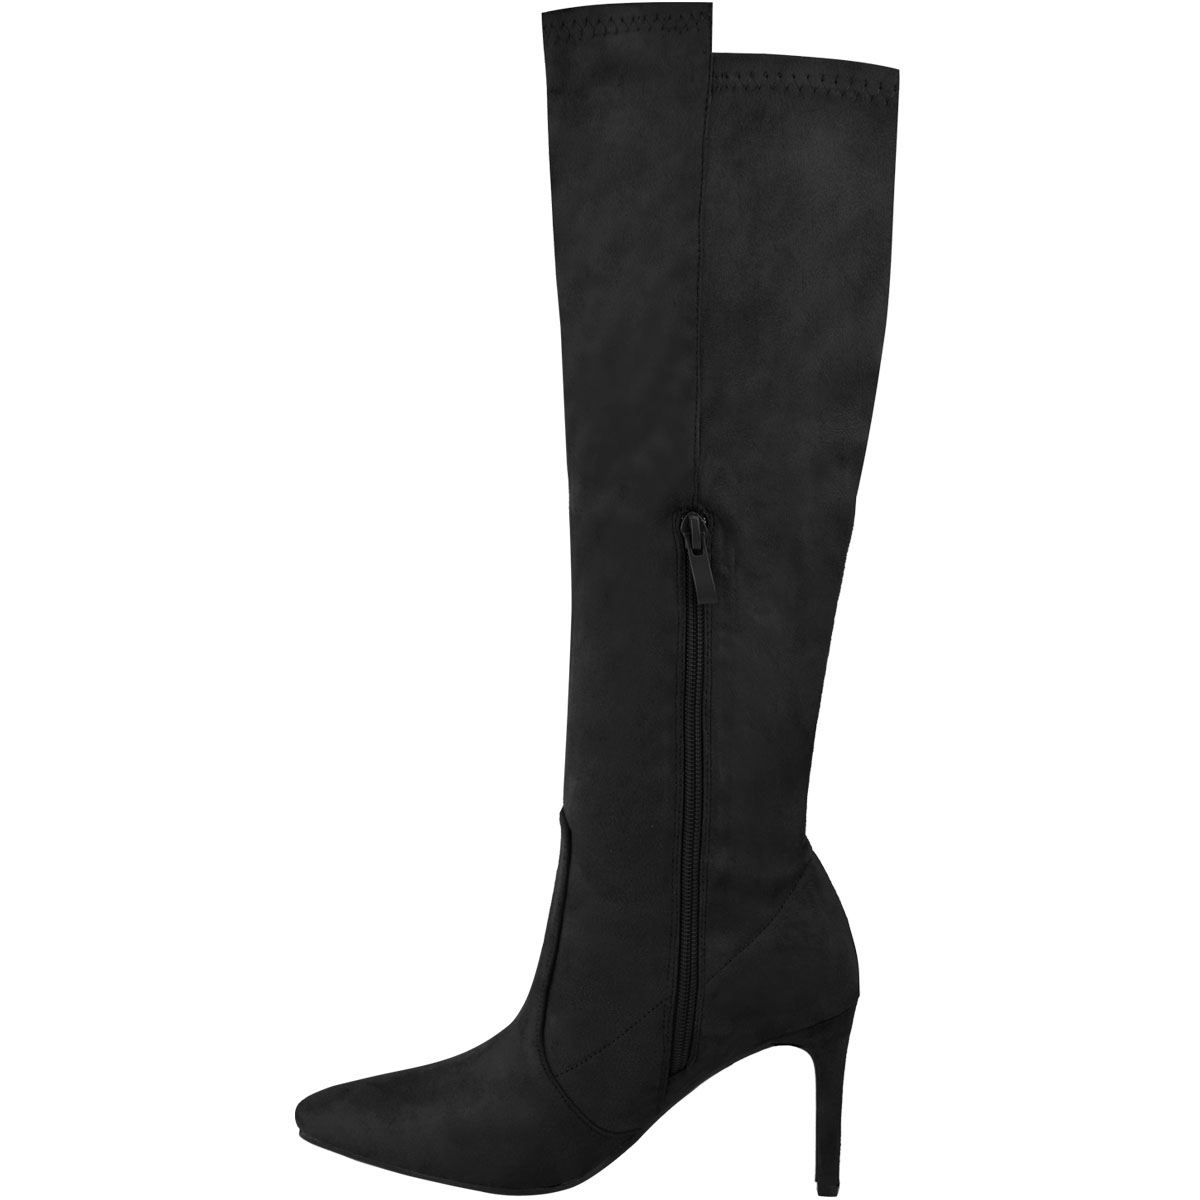 Ladies Womens Zip Up Knee High Pointed Toe Stiletto Heel Calf Boots Shoes Size